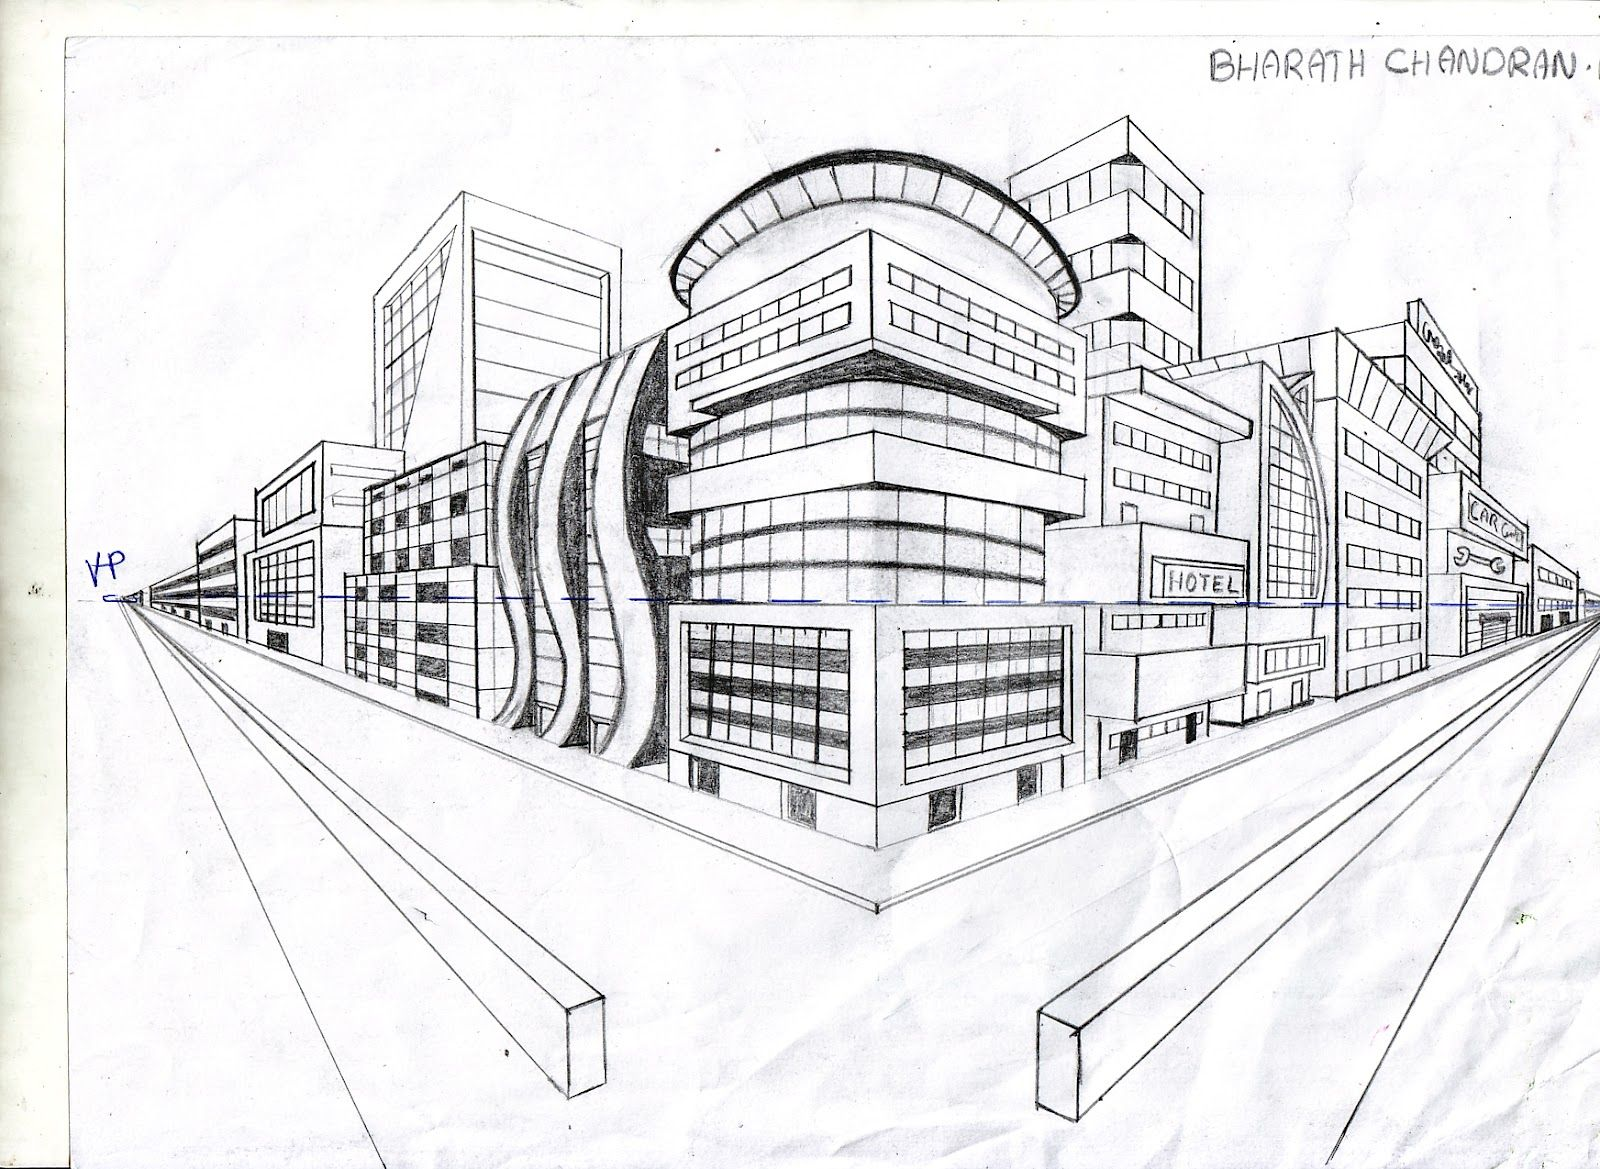 Pin by Bridget Jane on School TwoPoint Perspective